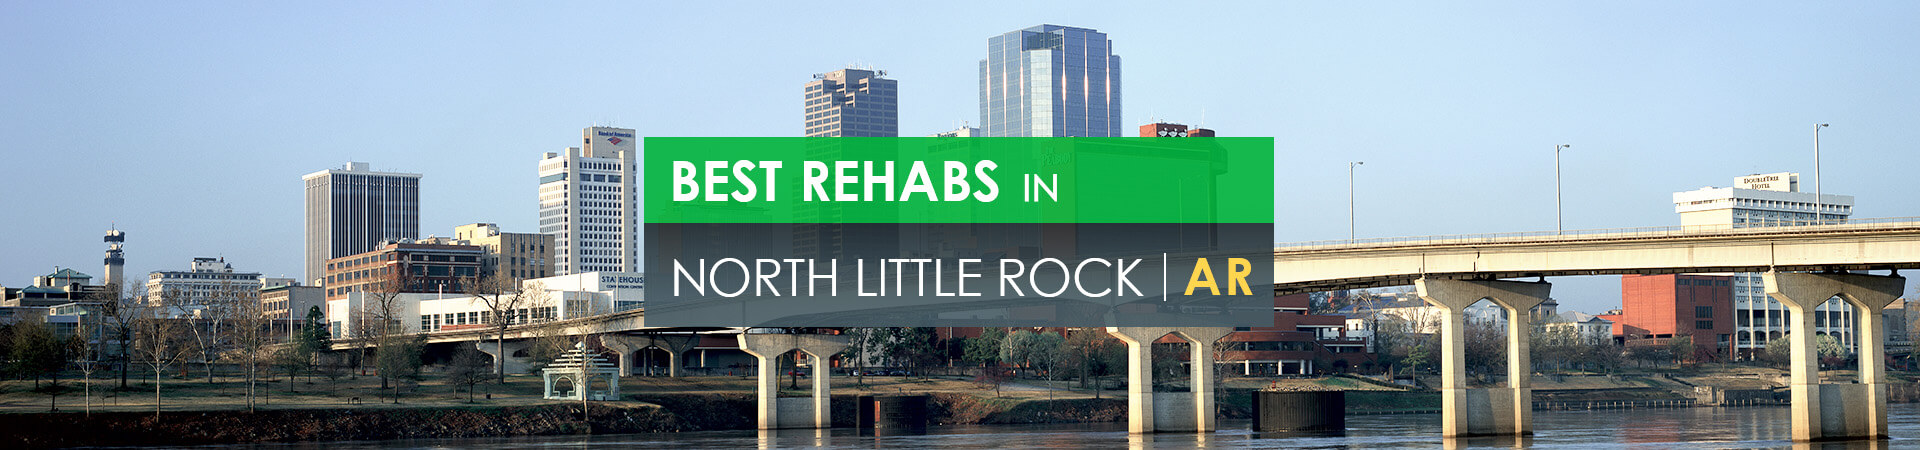 Best rehabs in North Little Rock, AR